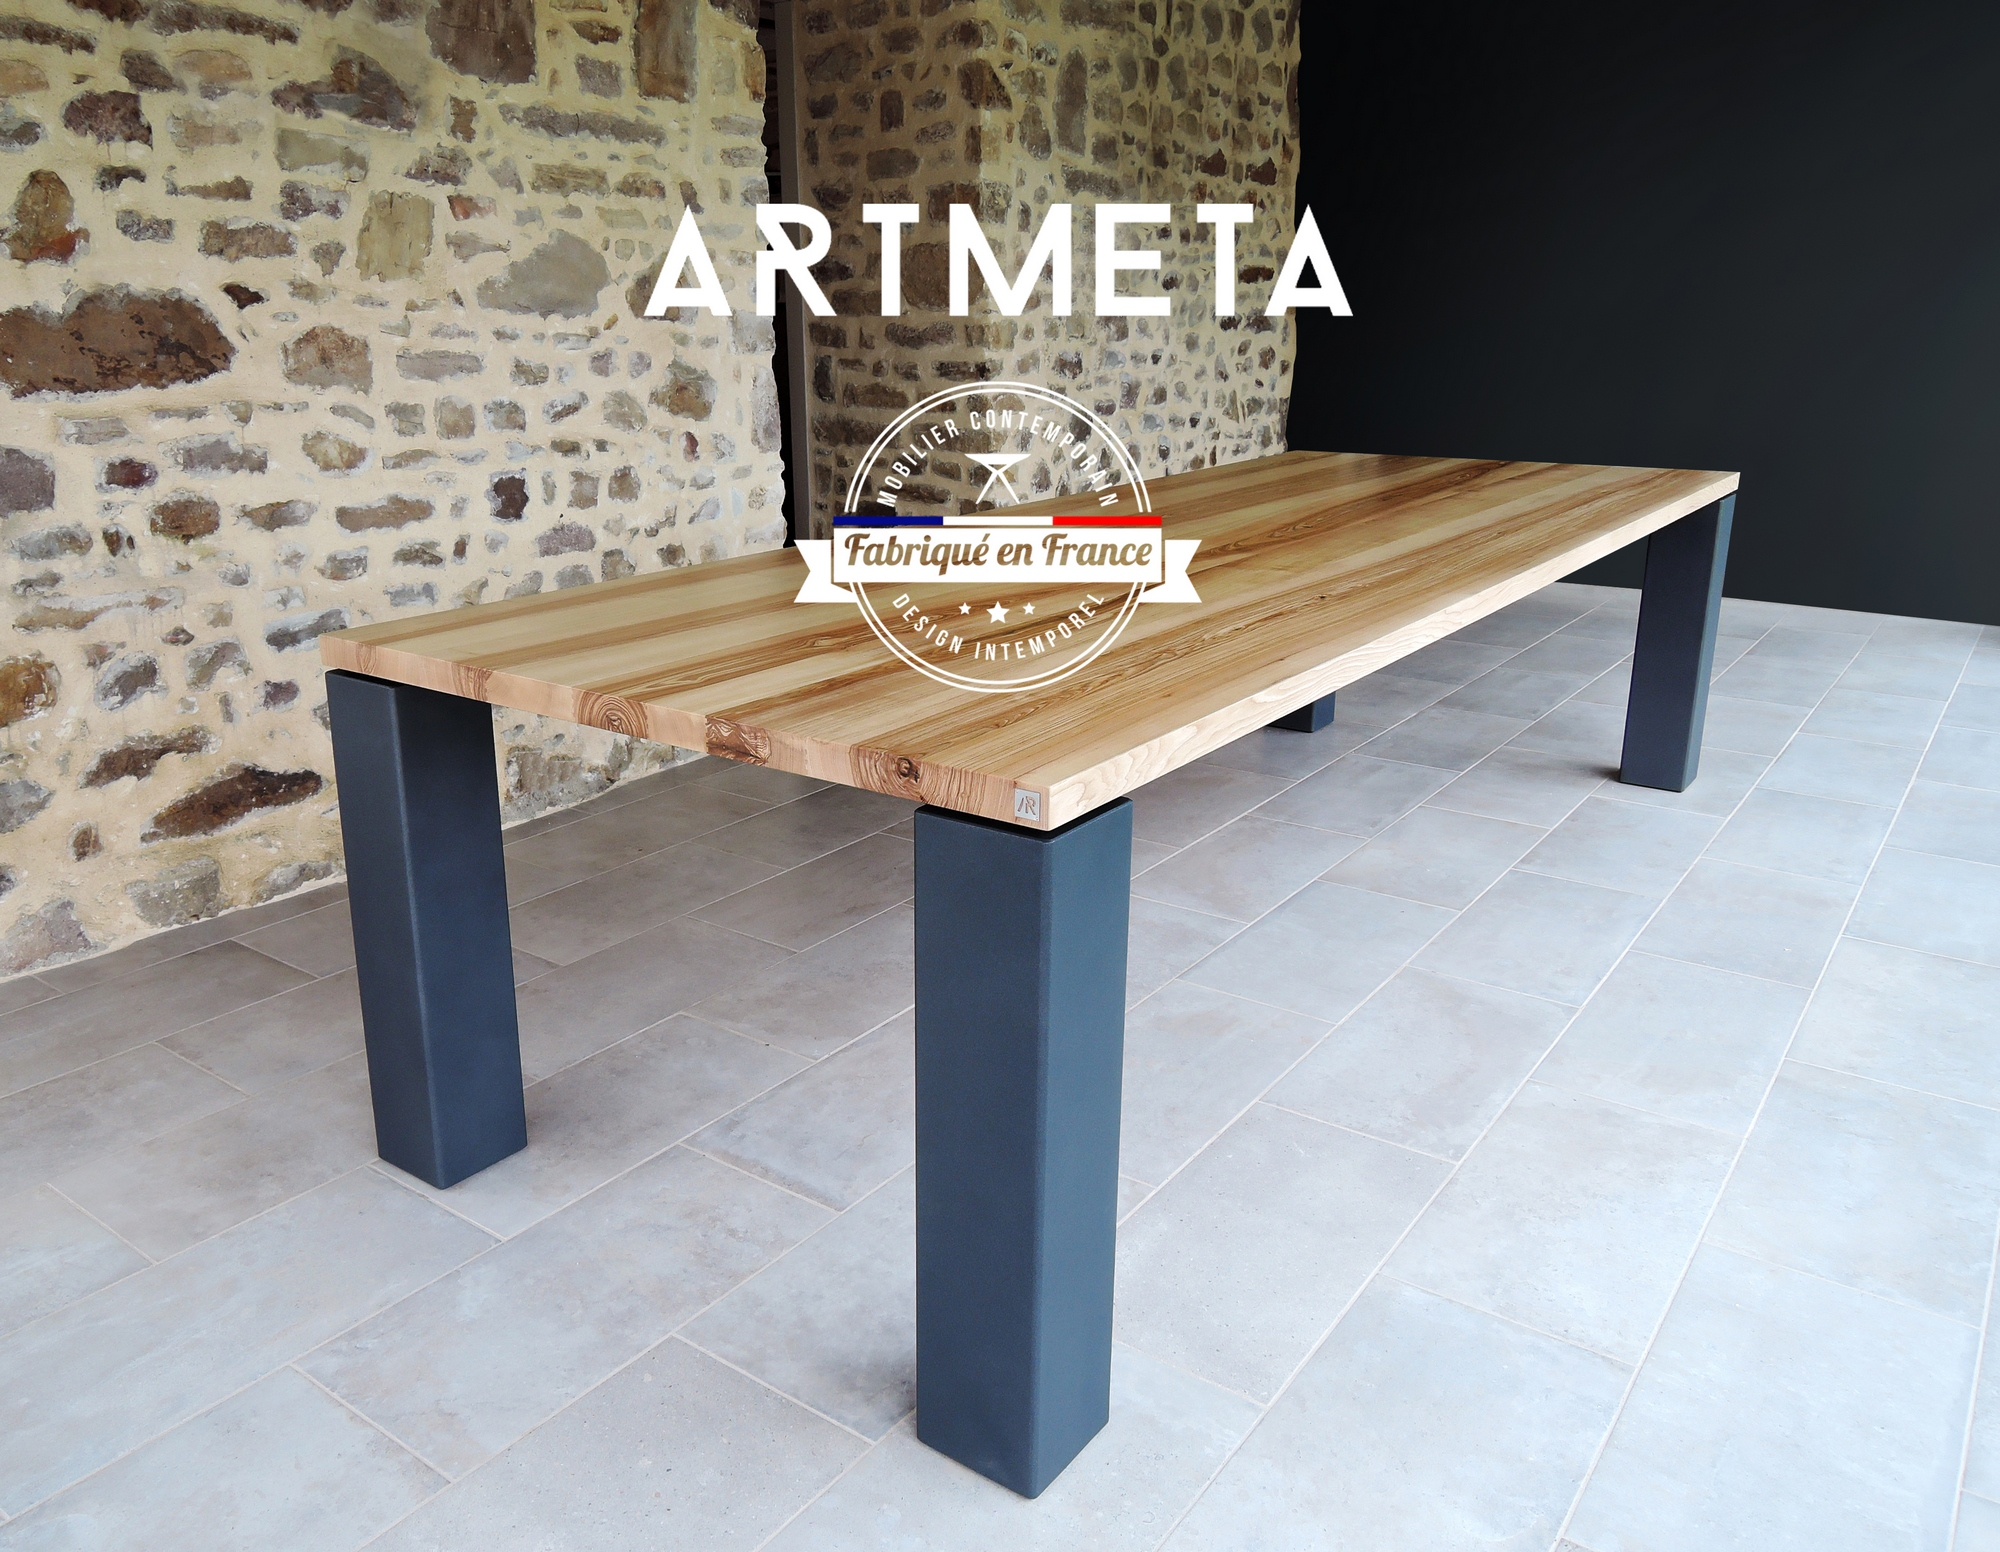 table artmeta metal et bois massif panorama pr sentation copier artmeta. Black Bedroom Furniture Sets. Home Design Ideas